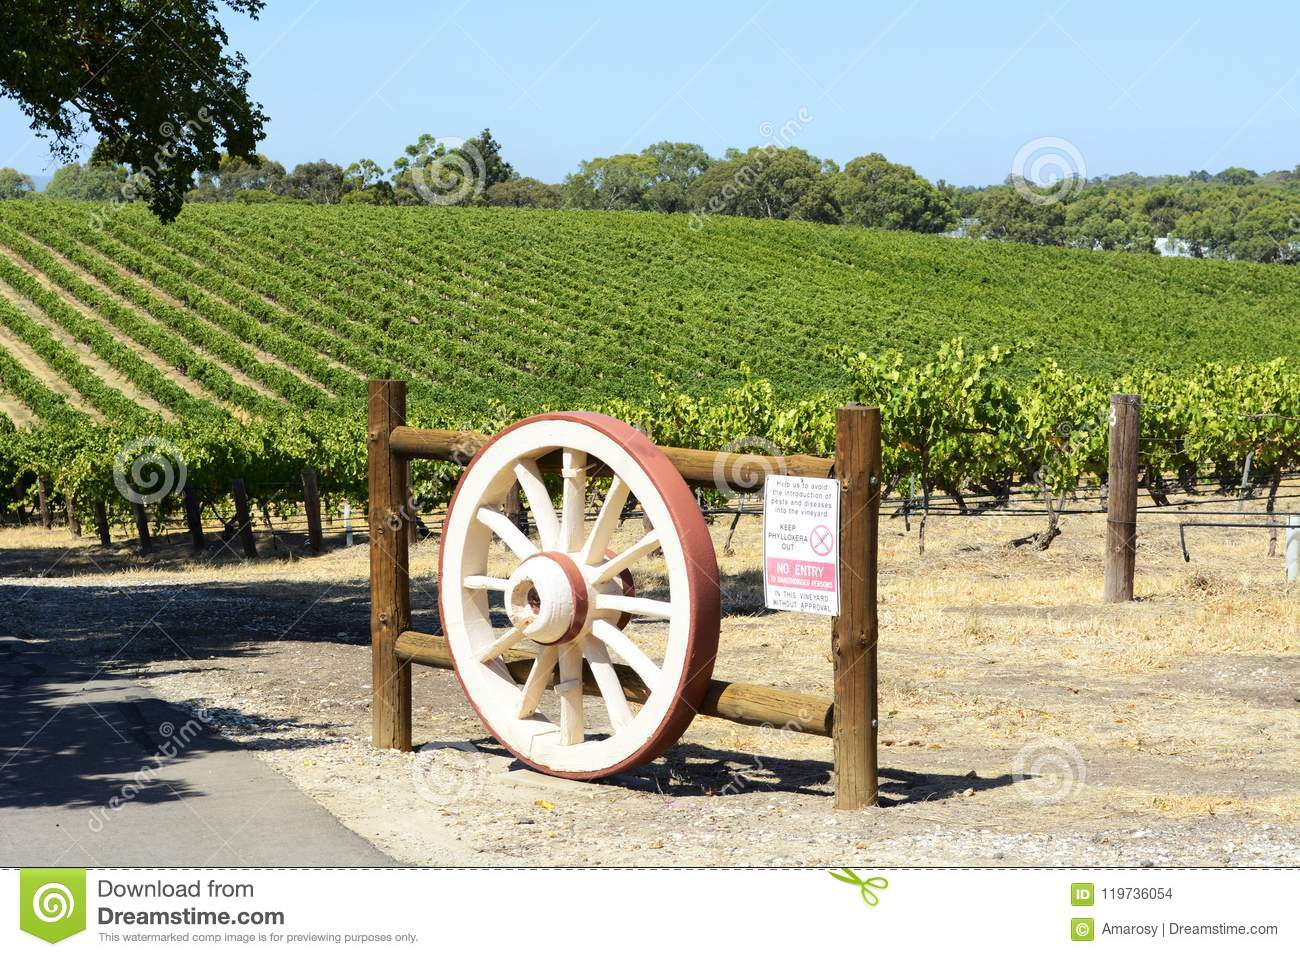 Rows of Grape Vines with wagen wheel gate, Barossa Valley, South Australia.